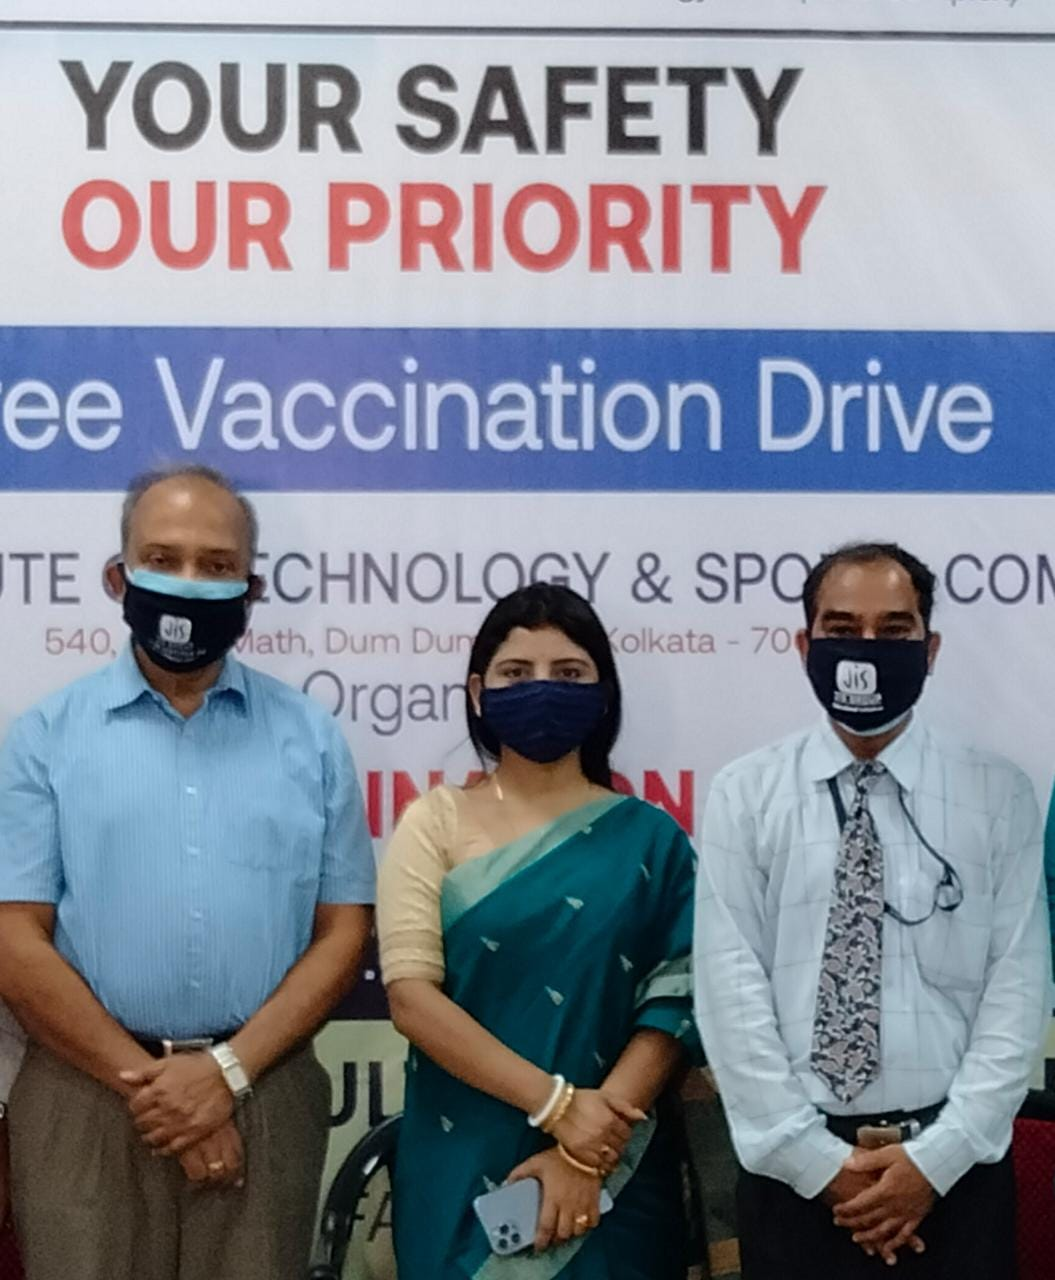 On-site free mass vaccination drive organized by Sur Institute of Technology